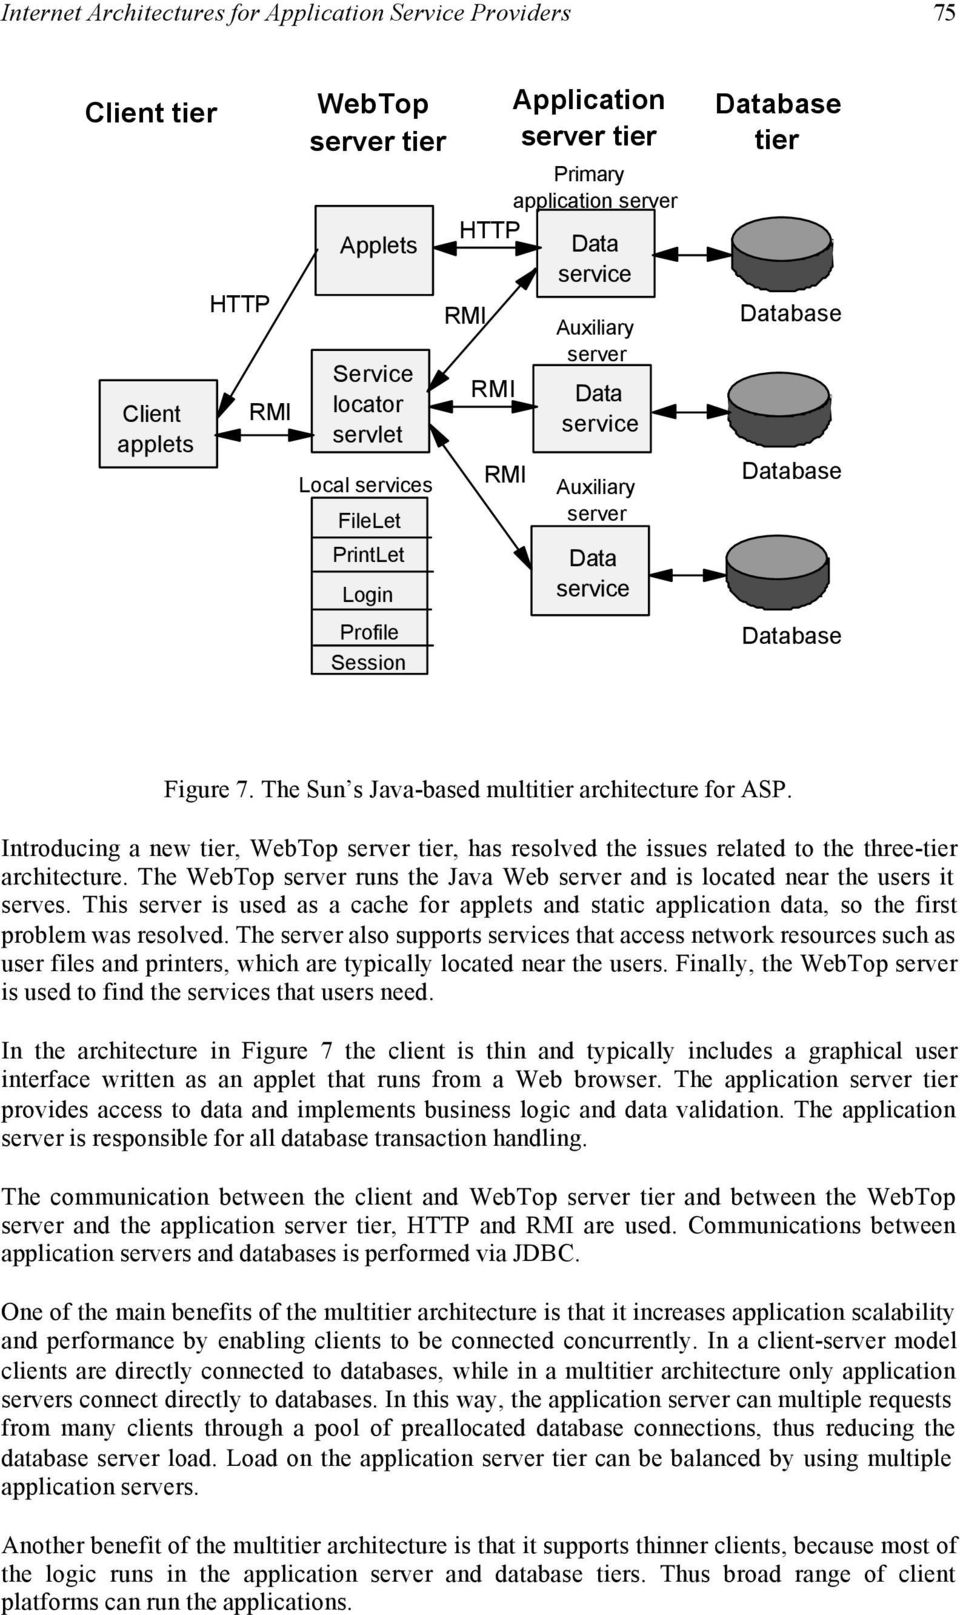 The Sun s Java-based multitier architecture for ASP. Introducing a new tier, WebTop server tier, has resolved the issues related to the three-tier architecture.